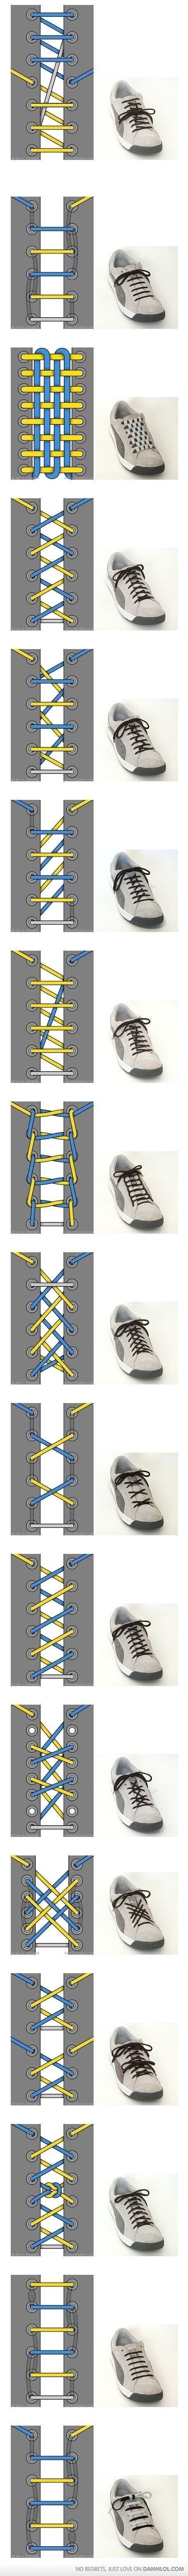 Cool Ways to Tie Your Shoes by Ian's Shoelace Site